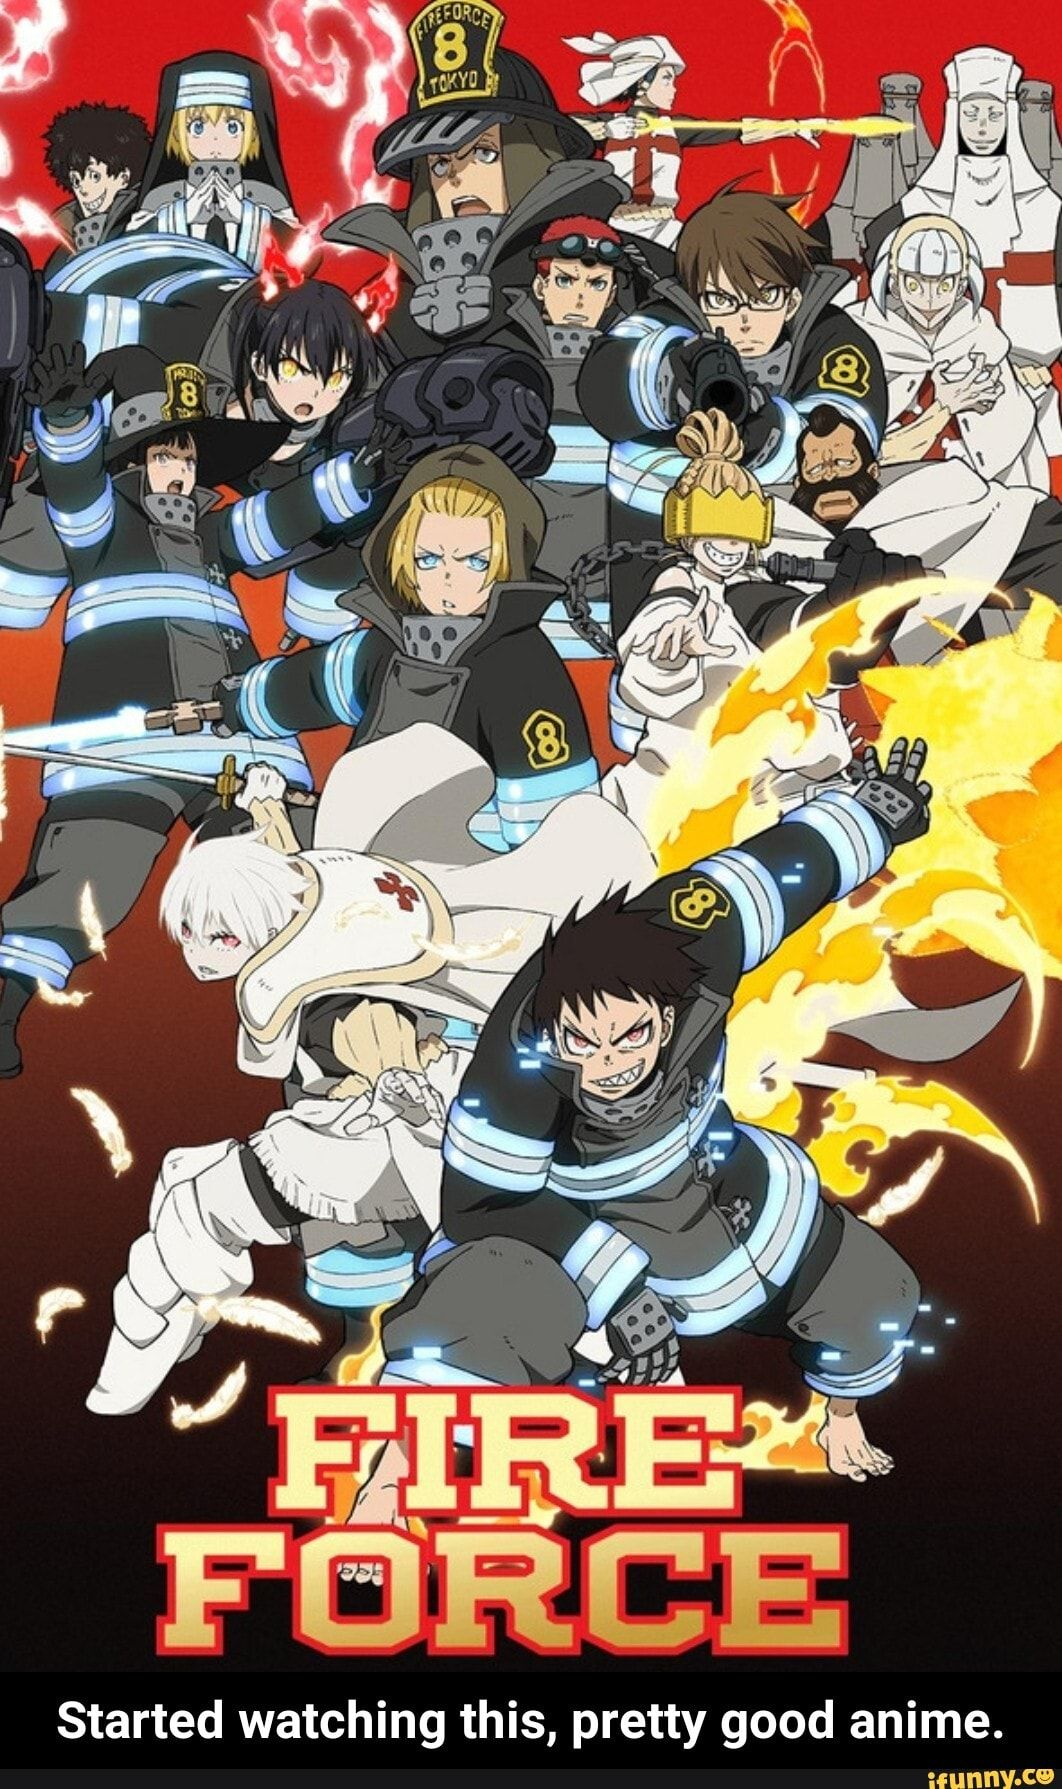 Started Watching This Pretty Good Anime Started Watching This